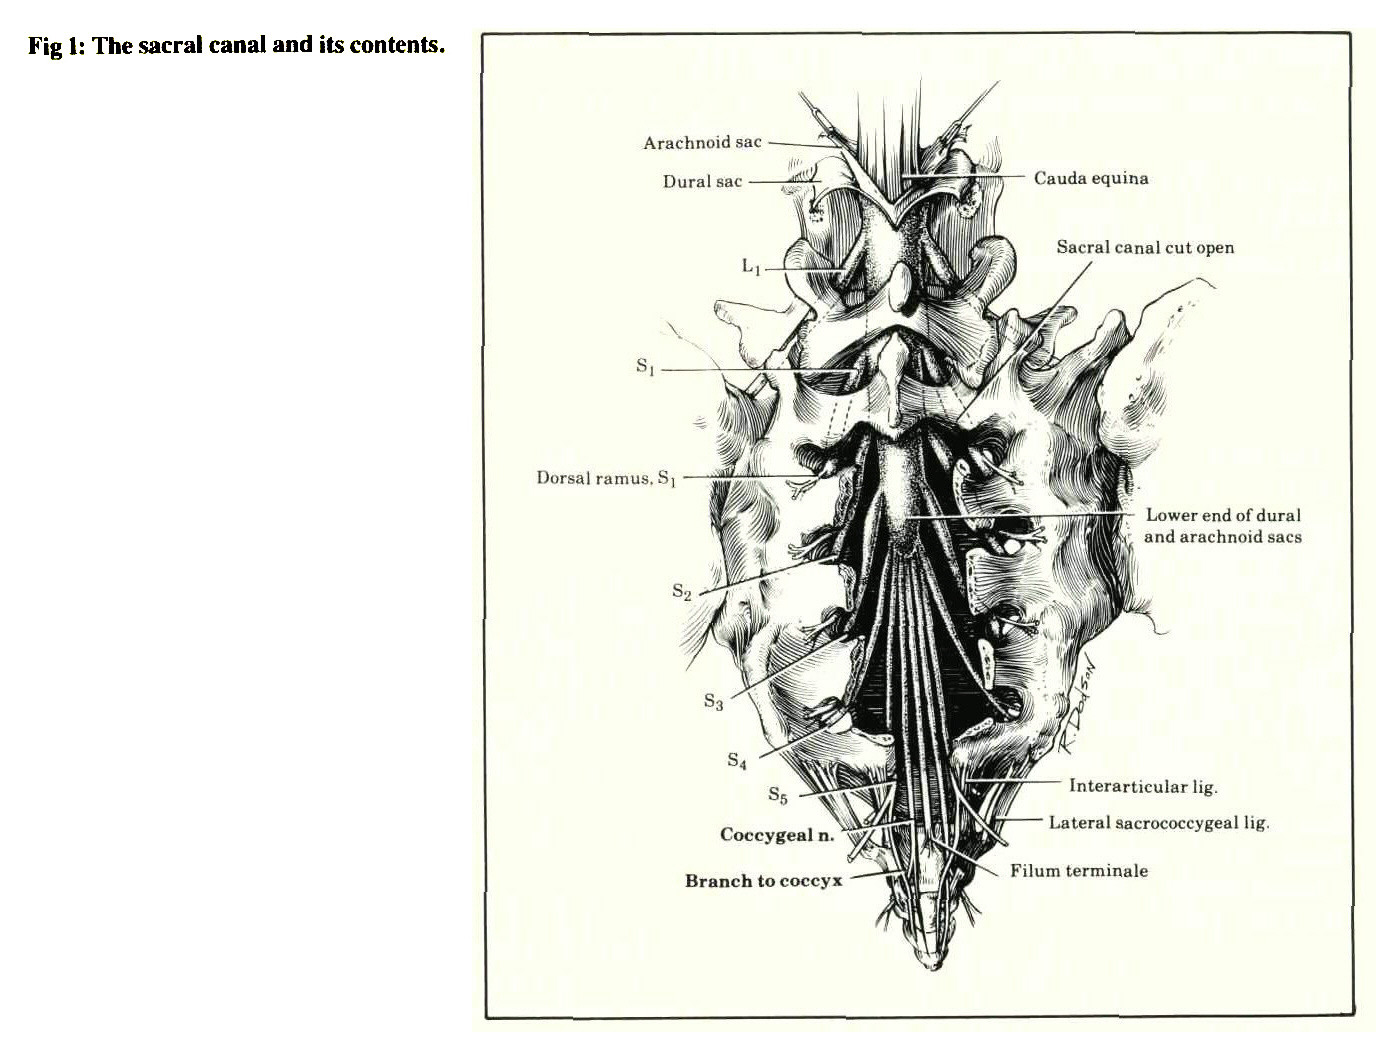 Fig 1: The sacral canal and its contents.